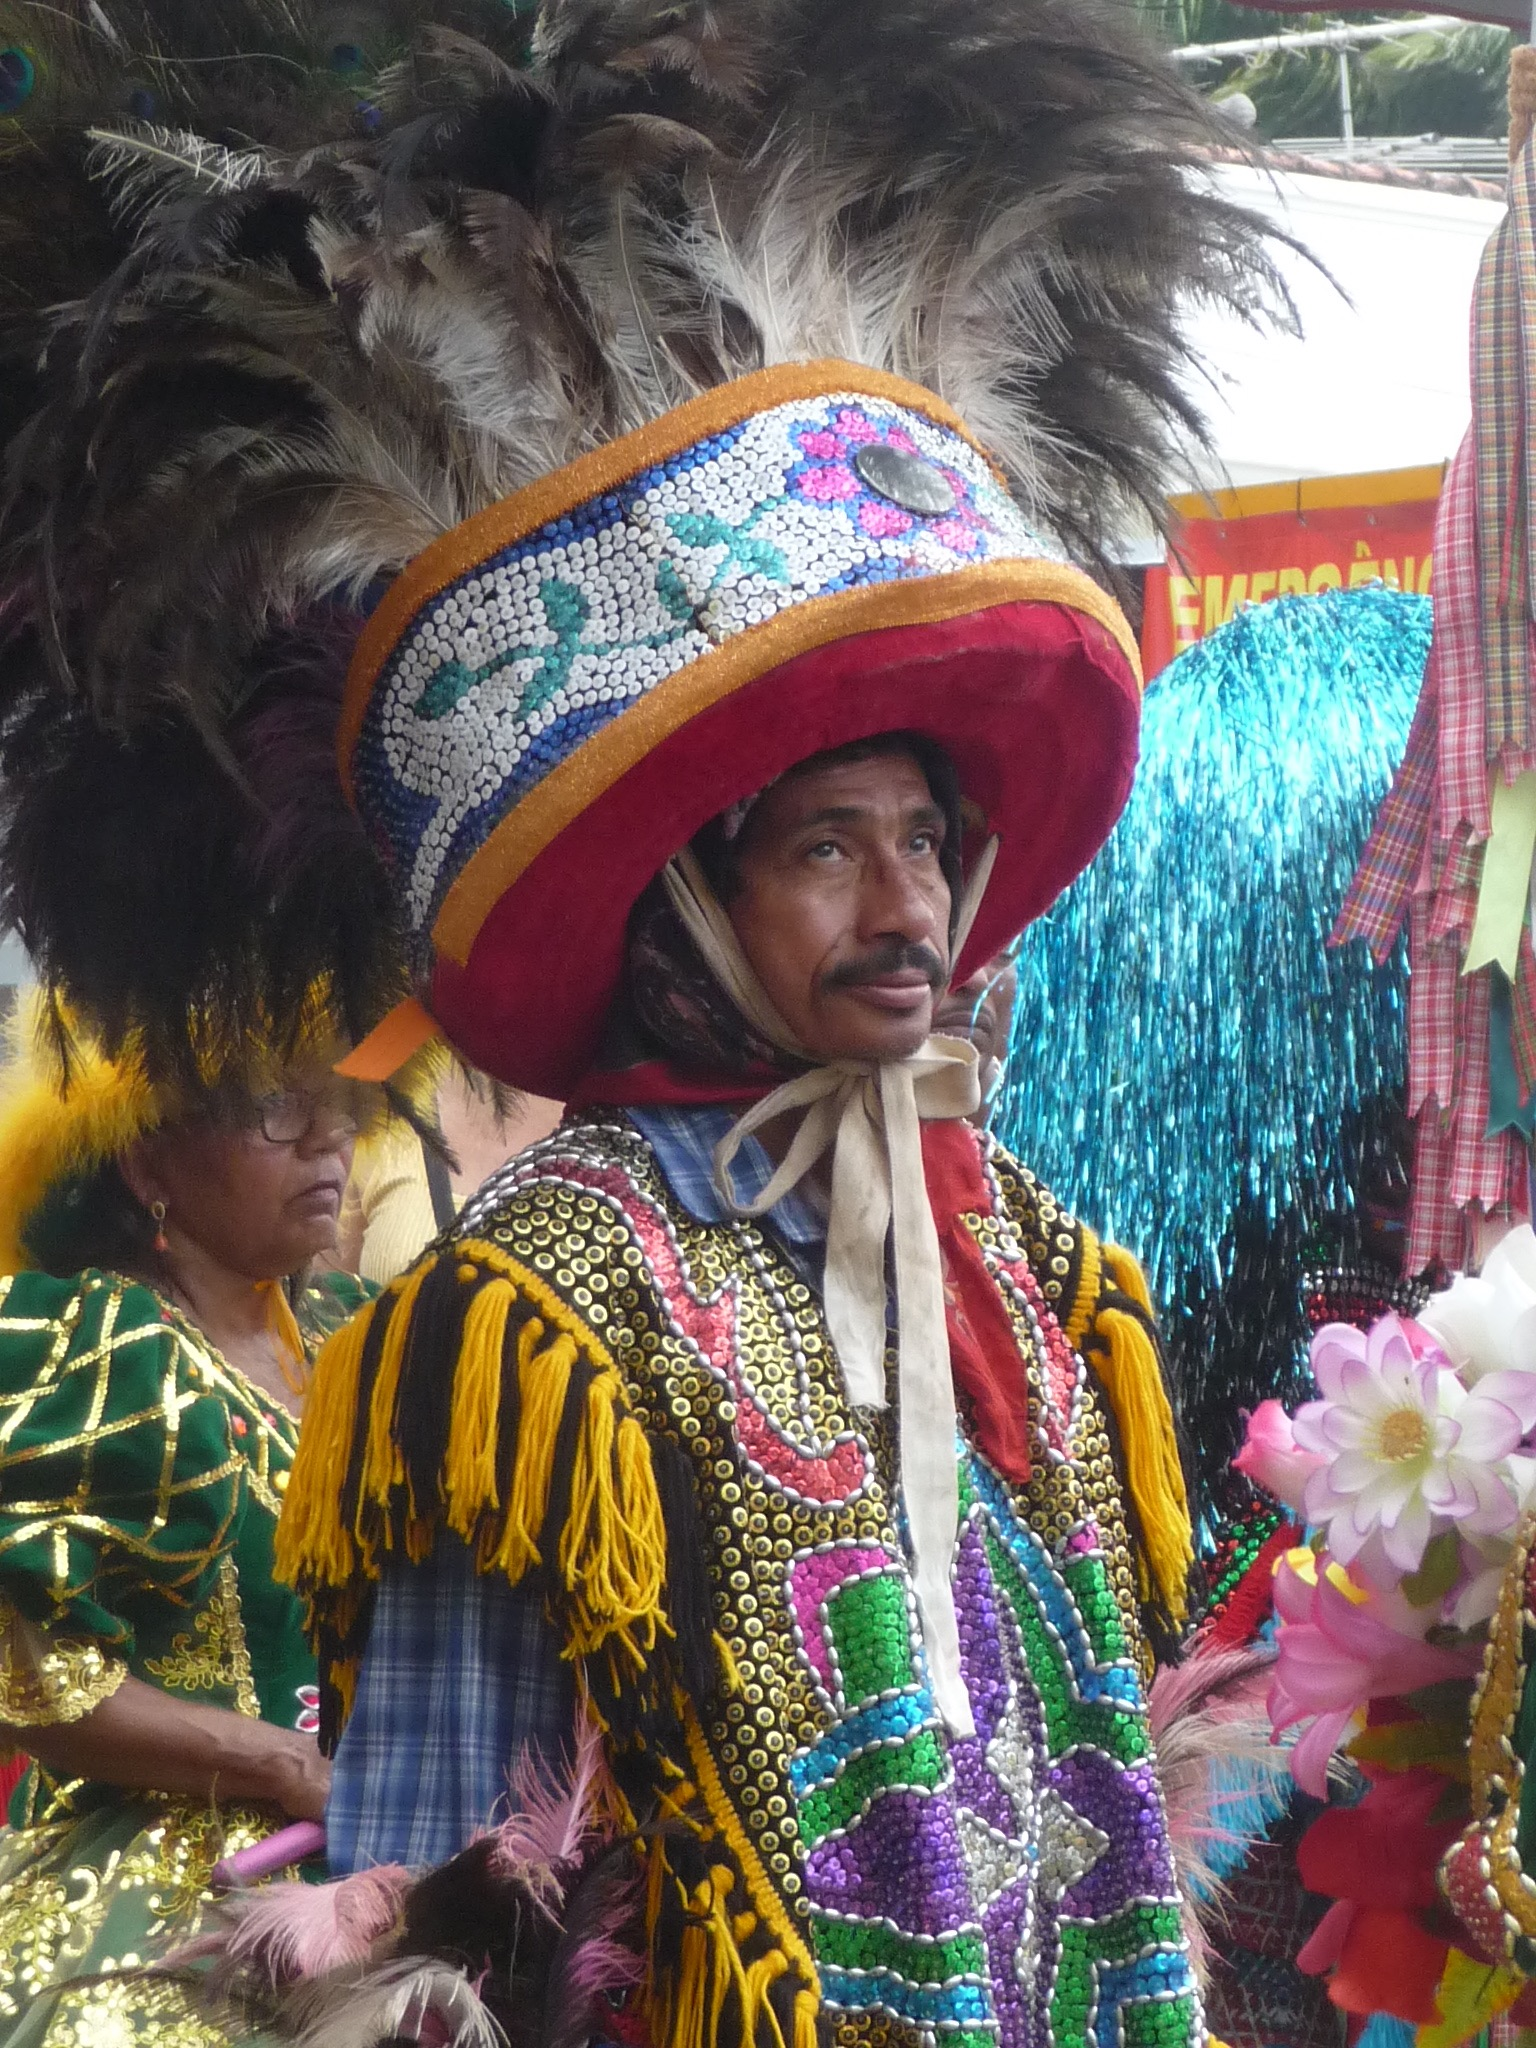 Coboclo, Olinda, with a headdress of peacock feathers